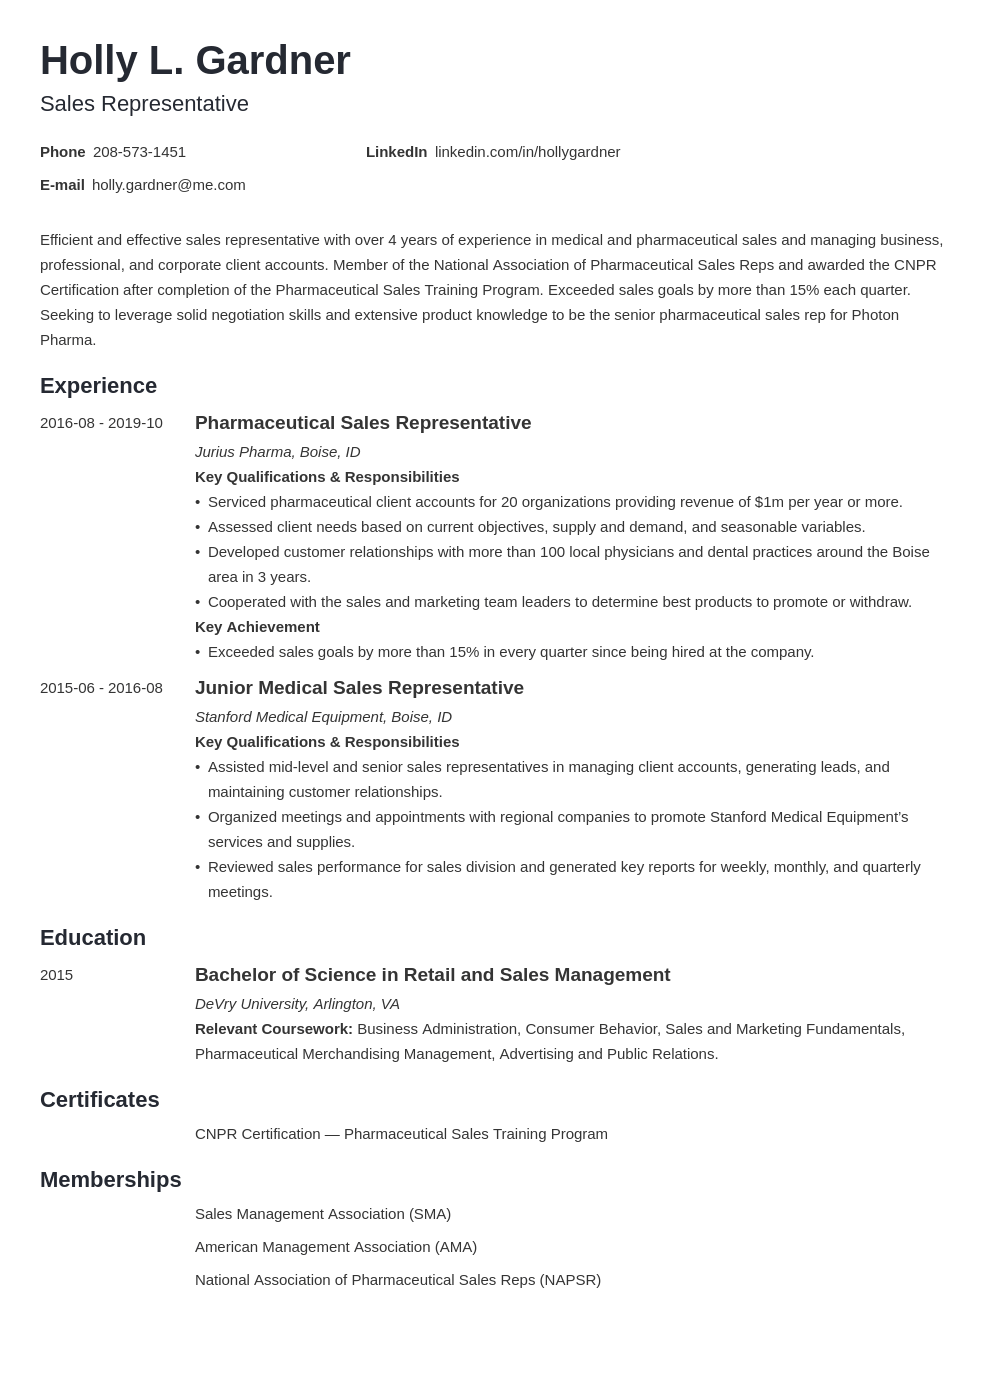 sales representative resume example template minimo in